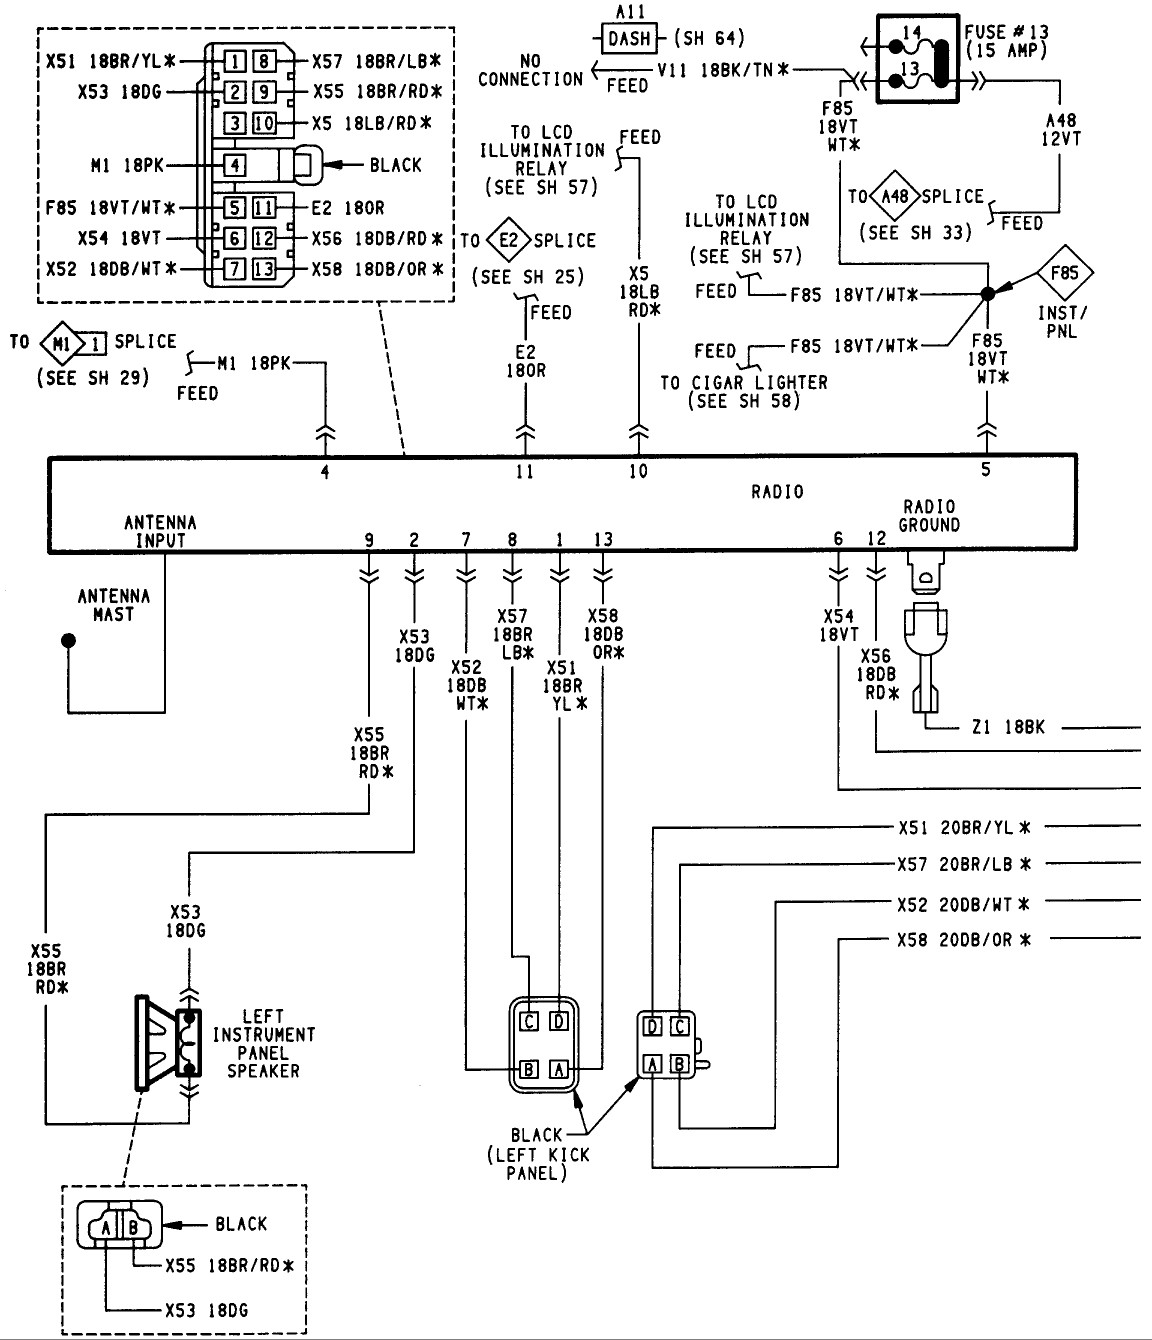 Jeep Wrangler Radio Wiring Diagram from static-resources.imageservice.cloud